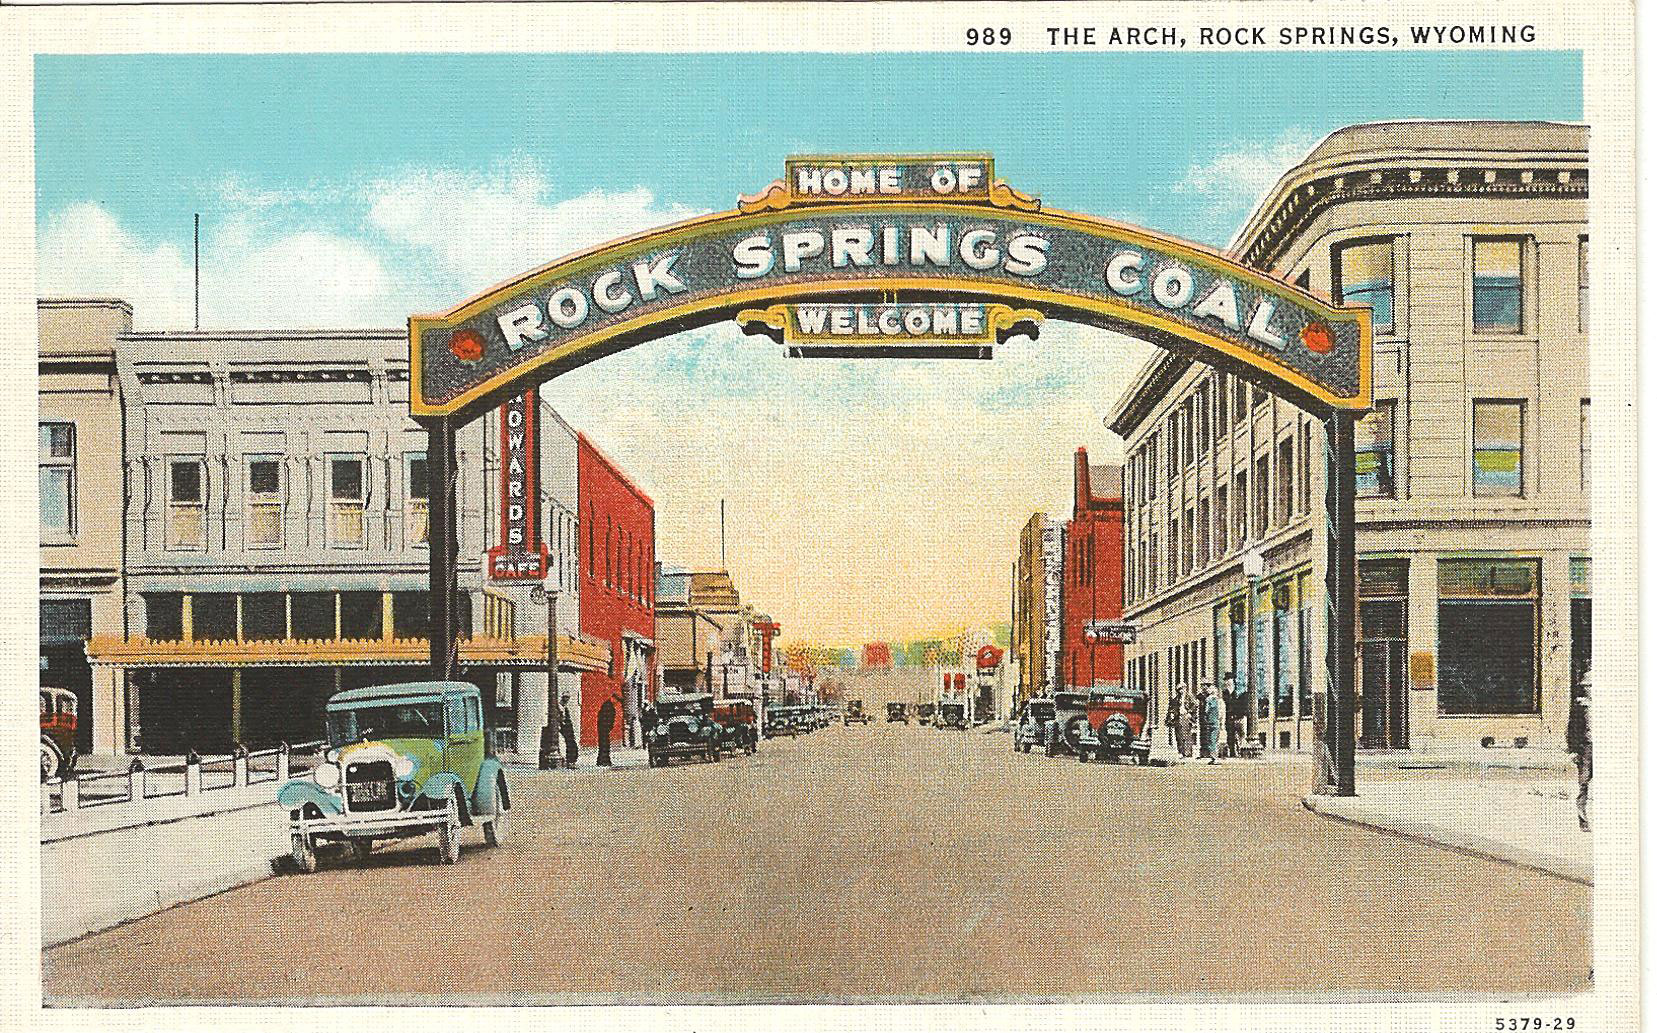 Welcome to the Home of Rock Springs Coal: The History of the Rock Springs Coal Arch (Part 1)